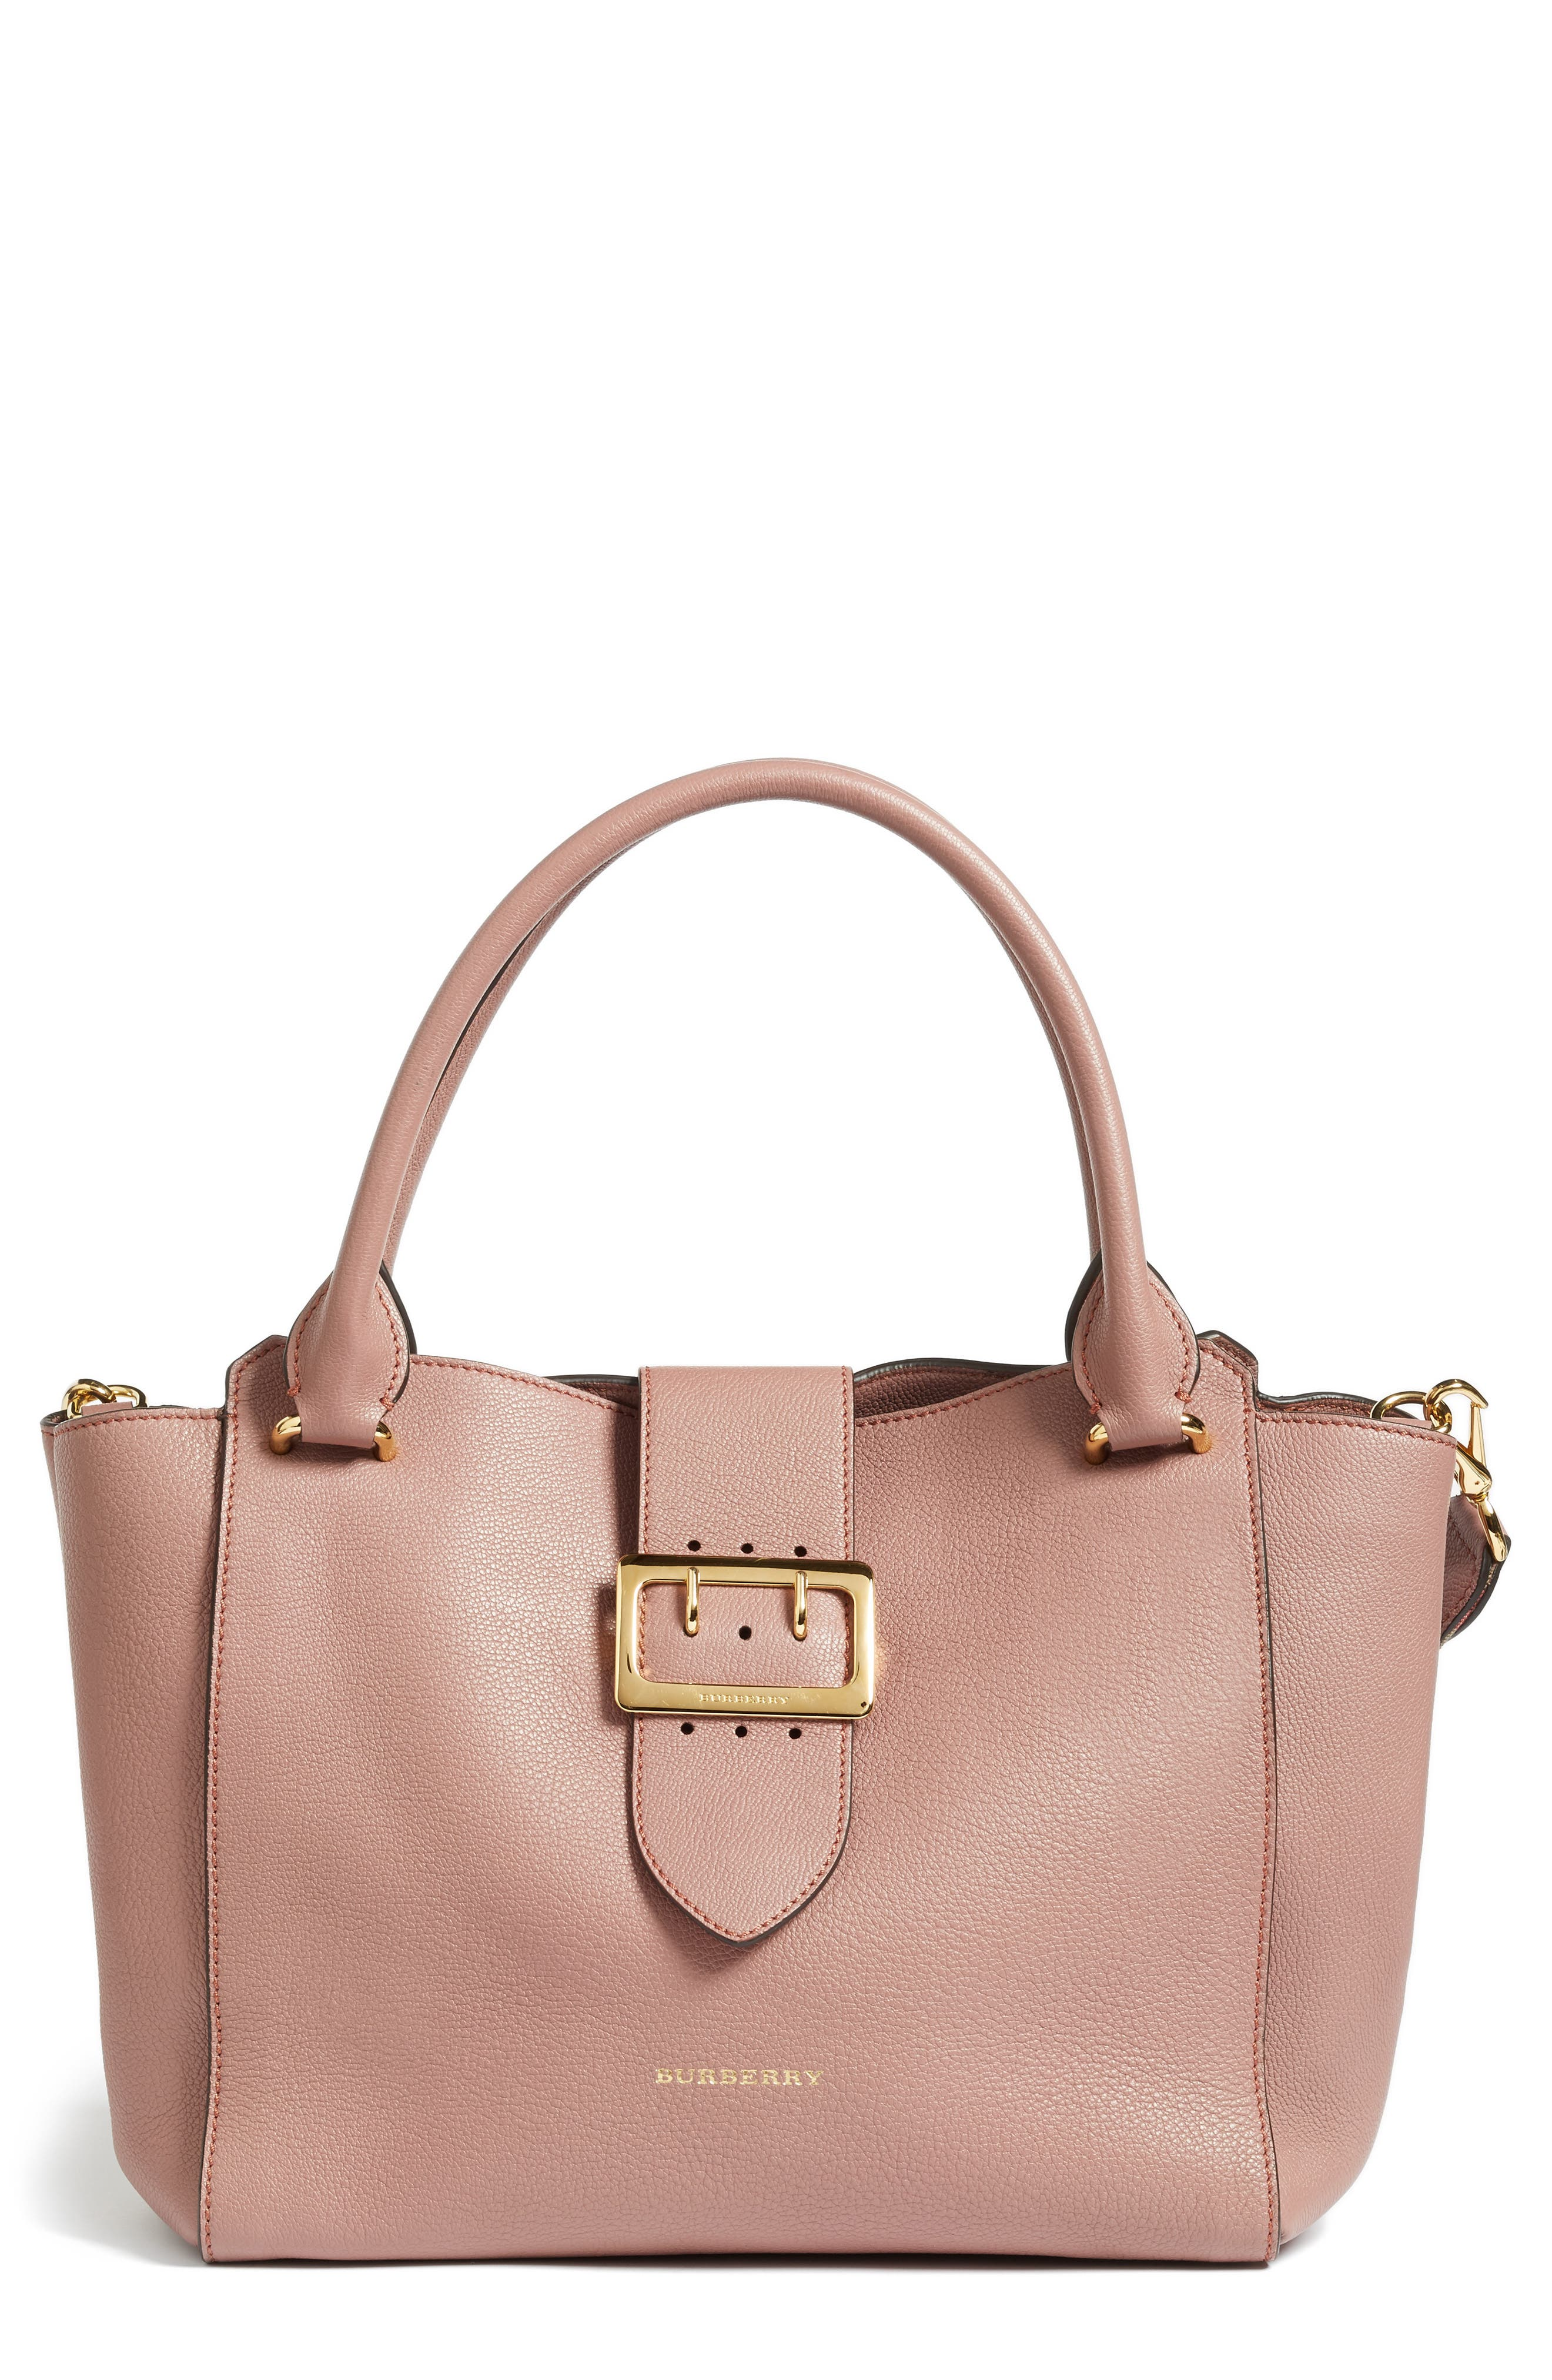 Alternate Image 1 Selected - Burberry Medium Buckle Tote